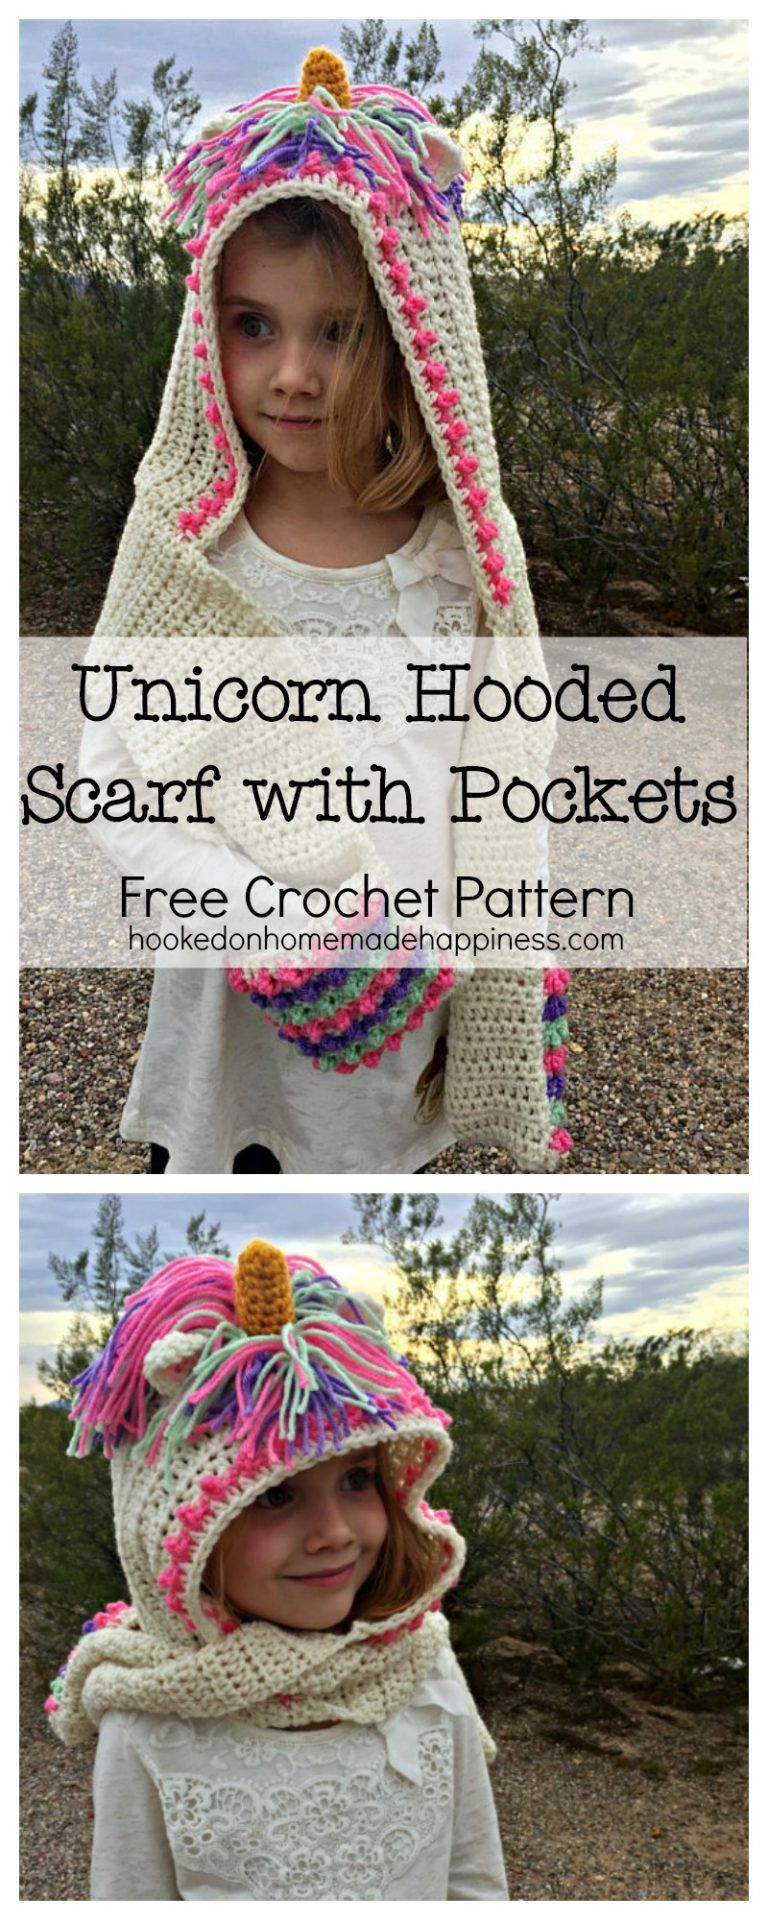 Free Crochet Pattern For Hooded Scarf With Pockets Best Design Inspiration